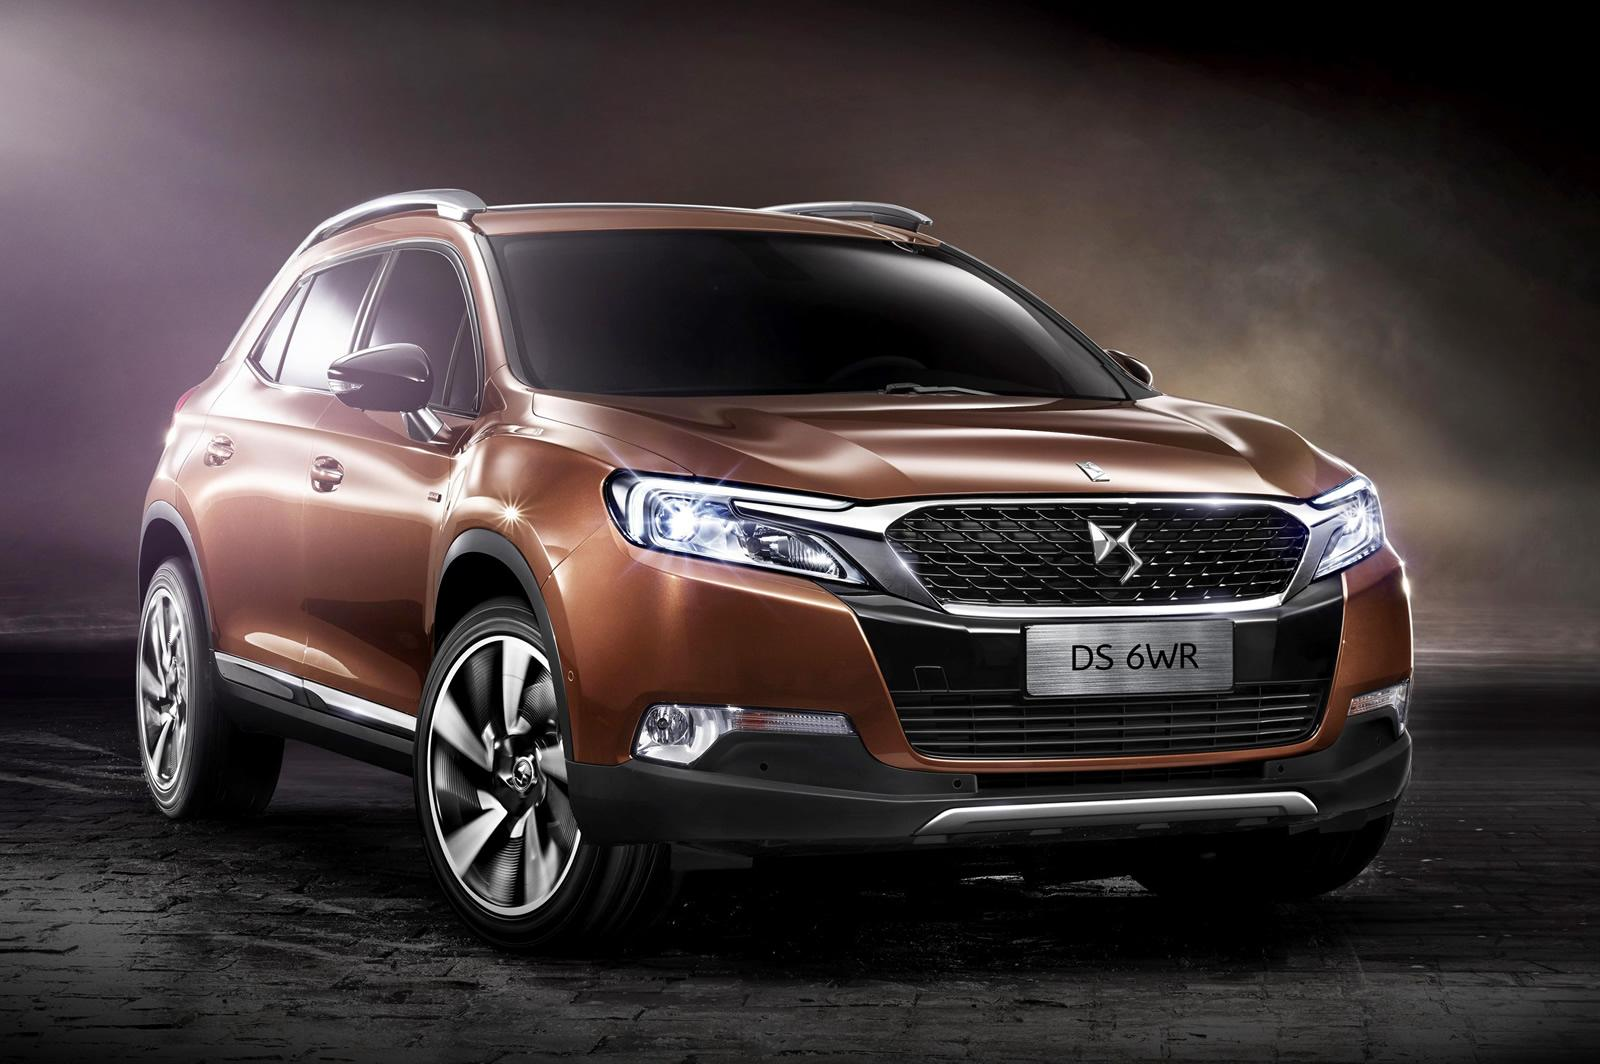 ds 6wr is a beautiful crossover suv but not a citroen autoevolution. Black Bedroom Furniture Sets. Home Design Ideas